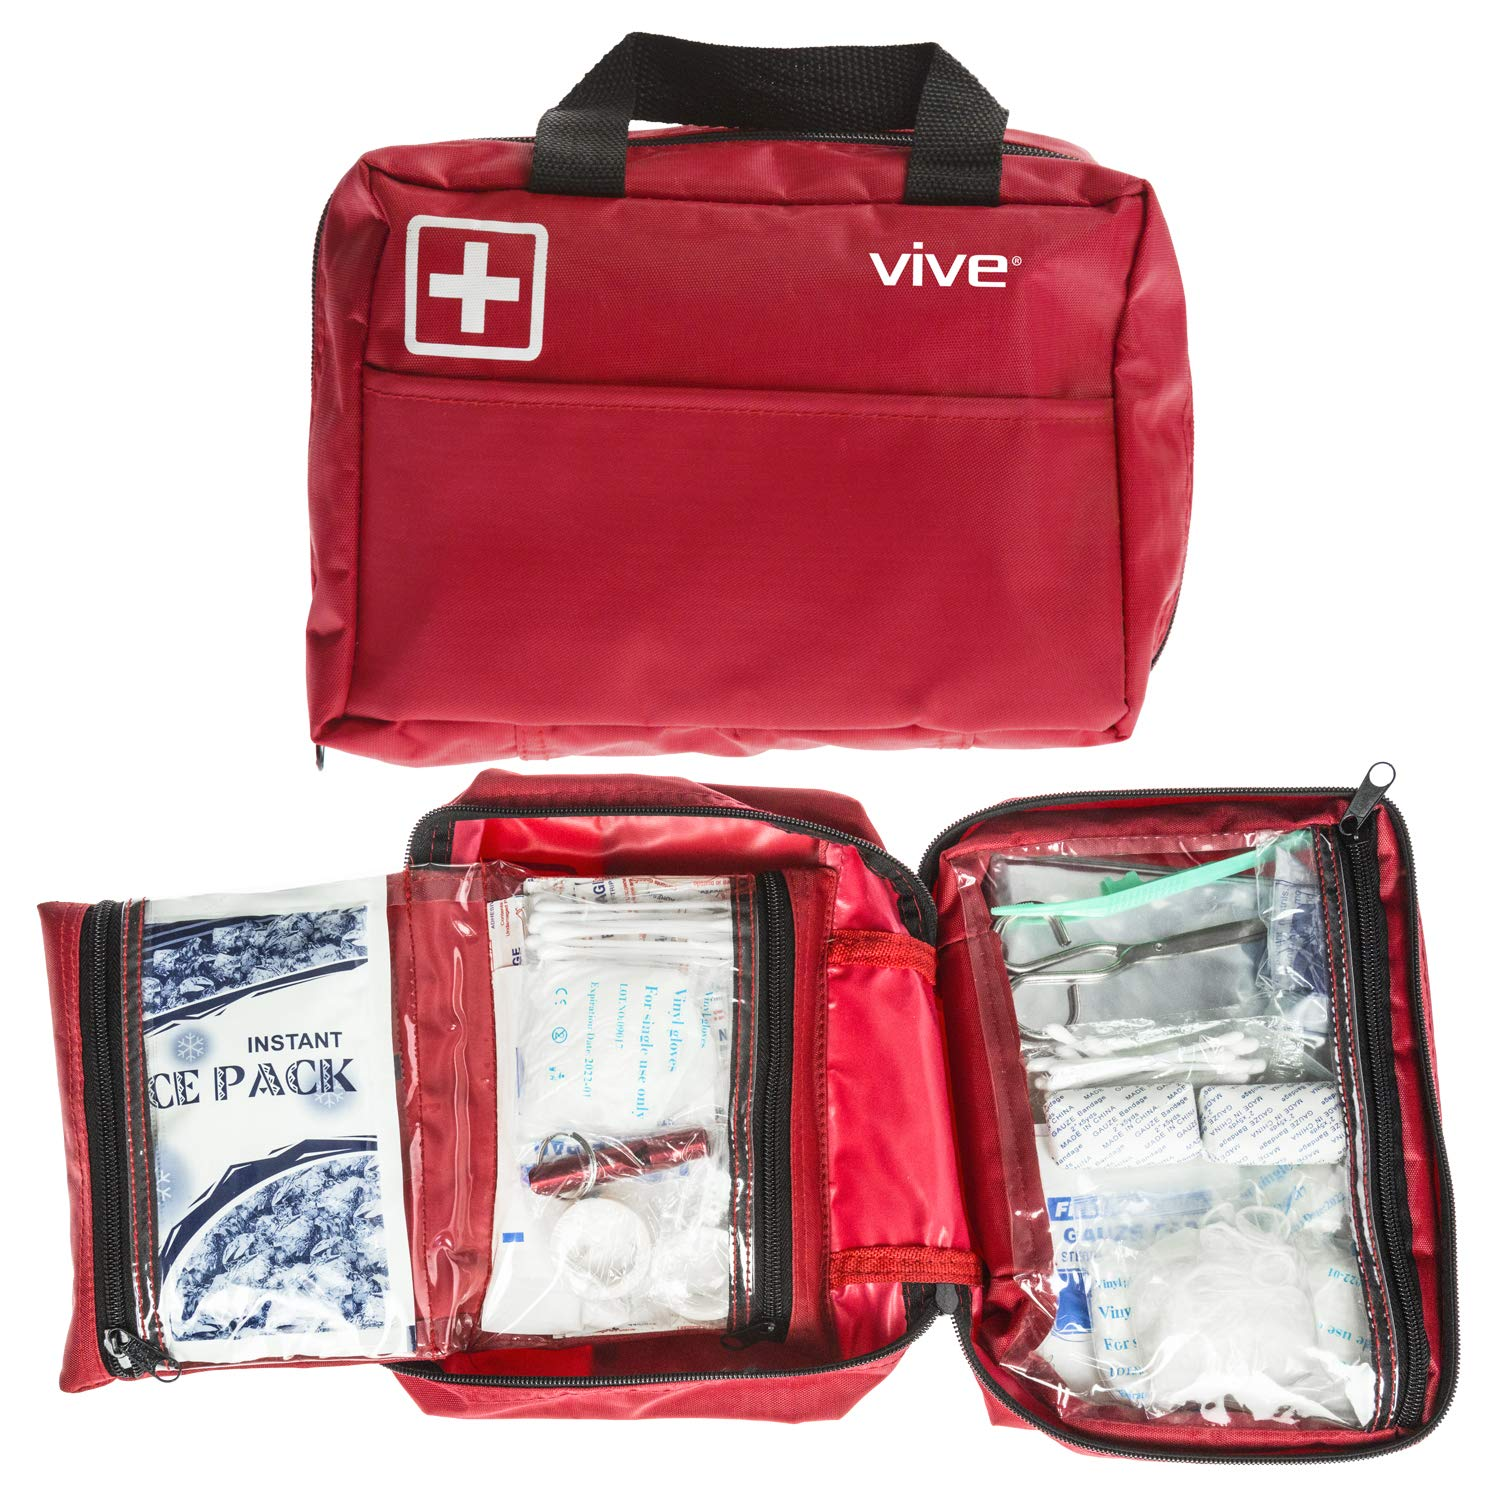 Vive First Aid Kit (300 Piece) - Survival Trauma Pack for Earthquake, Car and Home - Small EDC Gear for Vehicle, Auto Car and Camping - Emergency Medical Supply Safety Bag with Gauze, Tape, Scissors